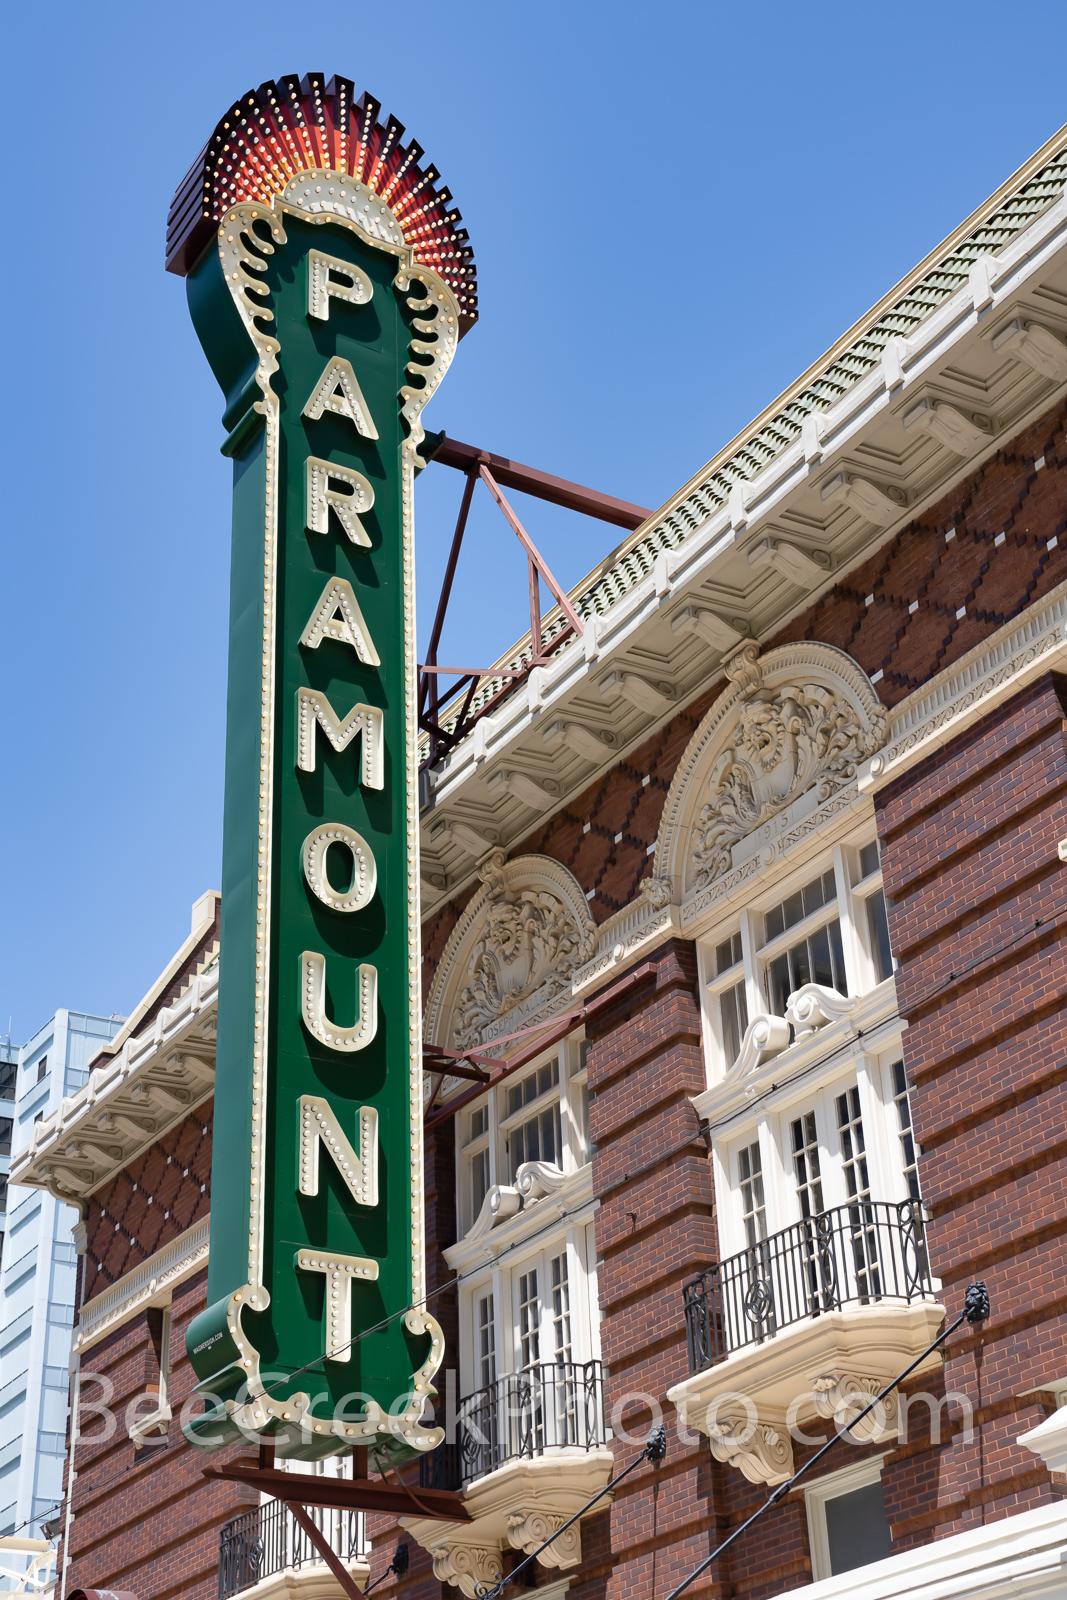 austin texas, paramount theatre, paramount theatre sign, sign, marquee, theater, austin, texas, movie theater, downtown austin, landmark, austin landmark, national register of historic places, south b, photo